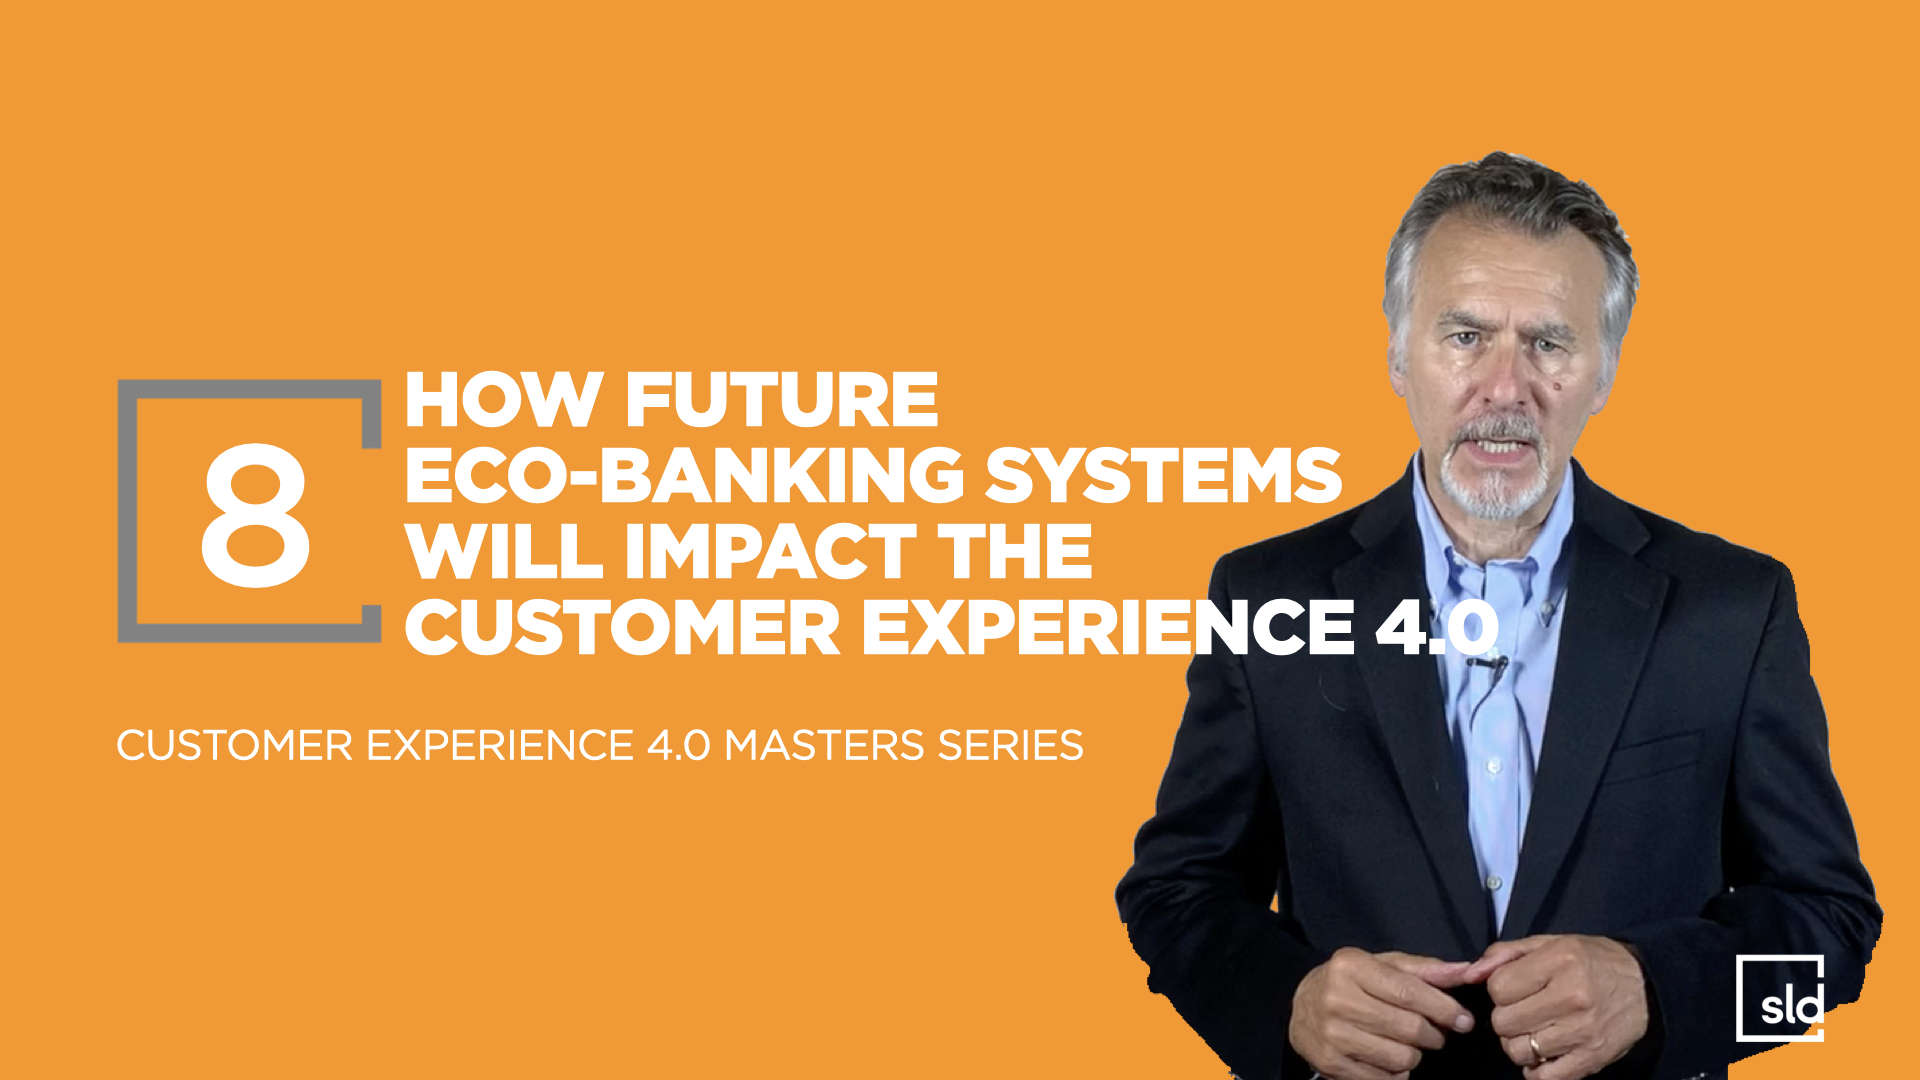 8. How Future Eco-Banking Systems Will Impact the Customer Experience 4.0